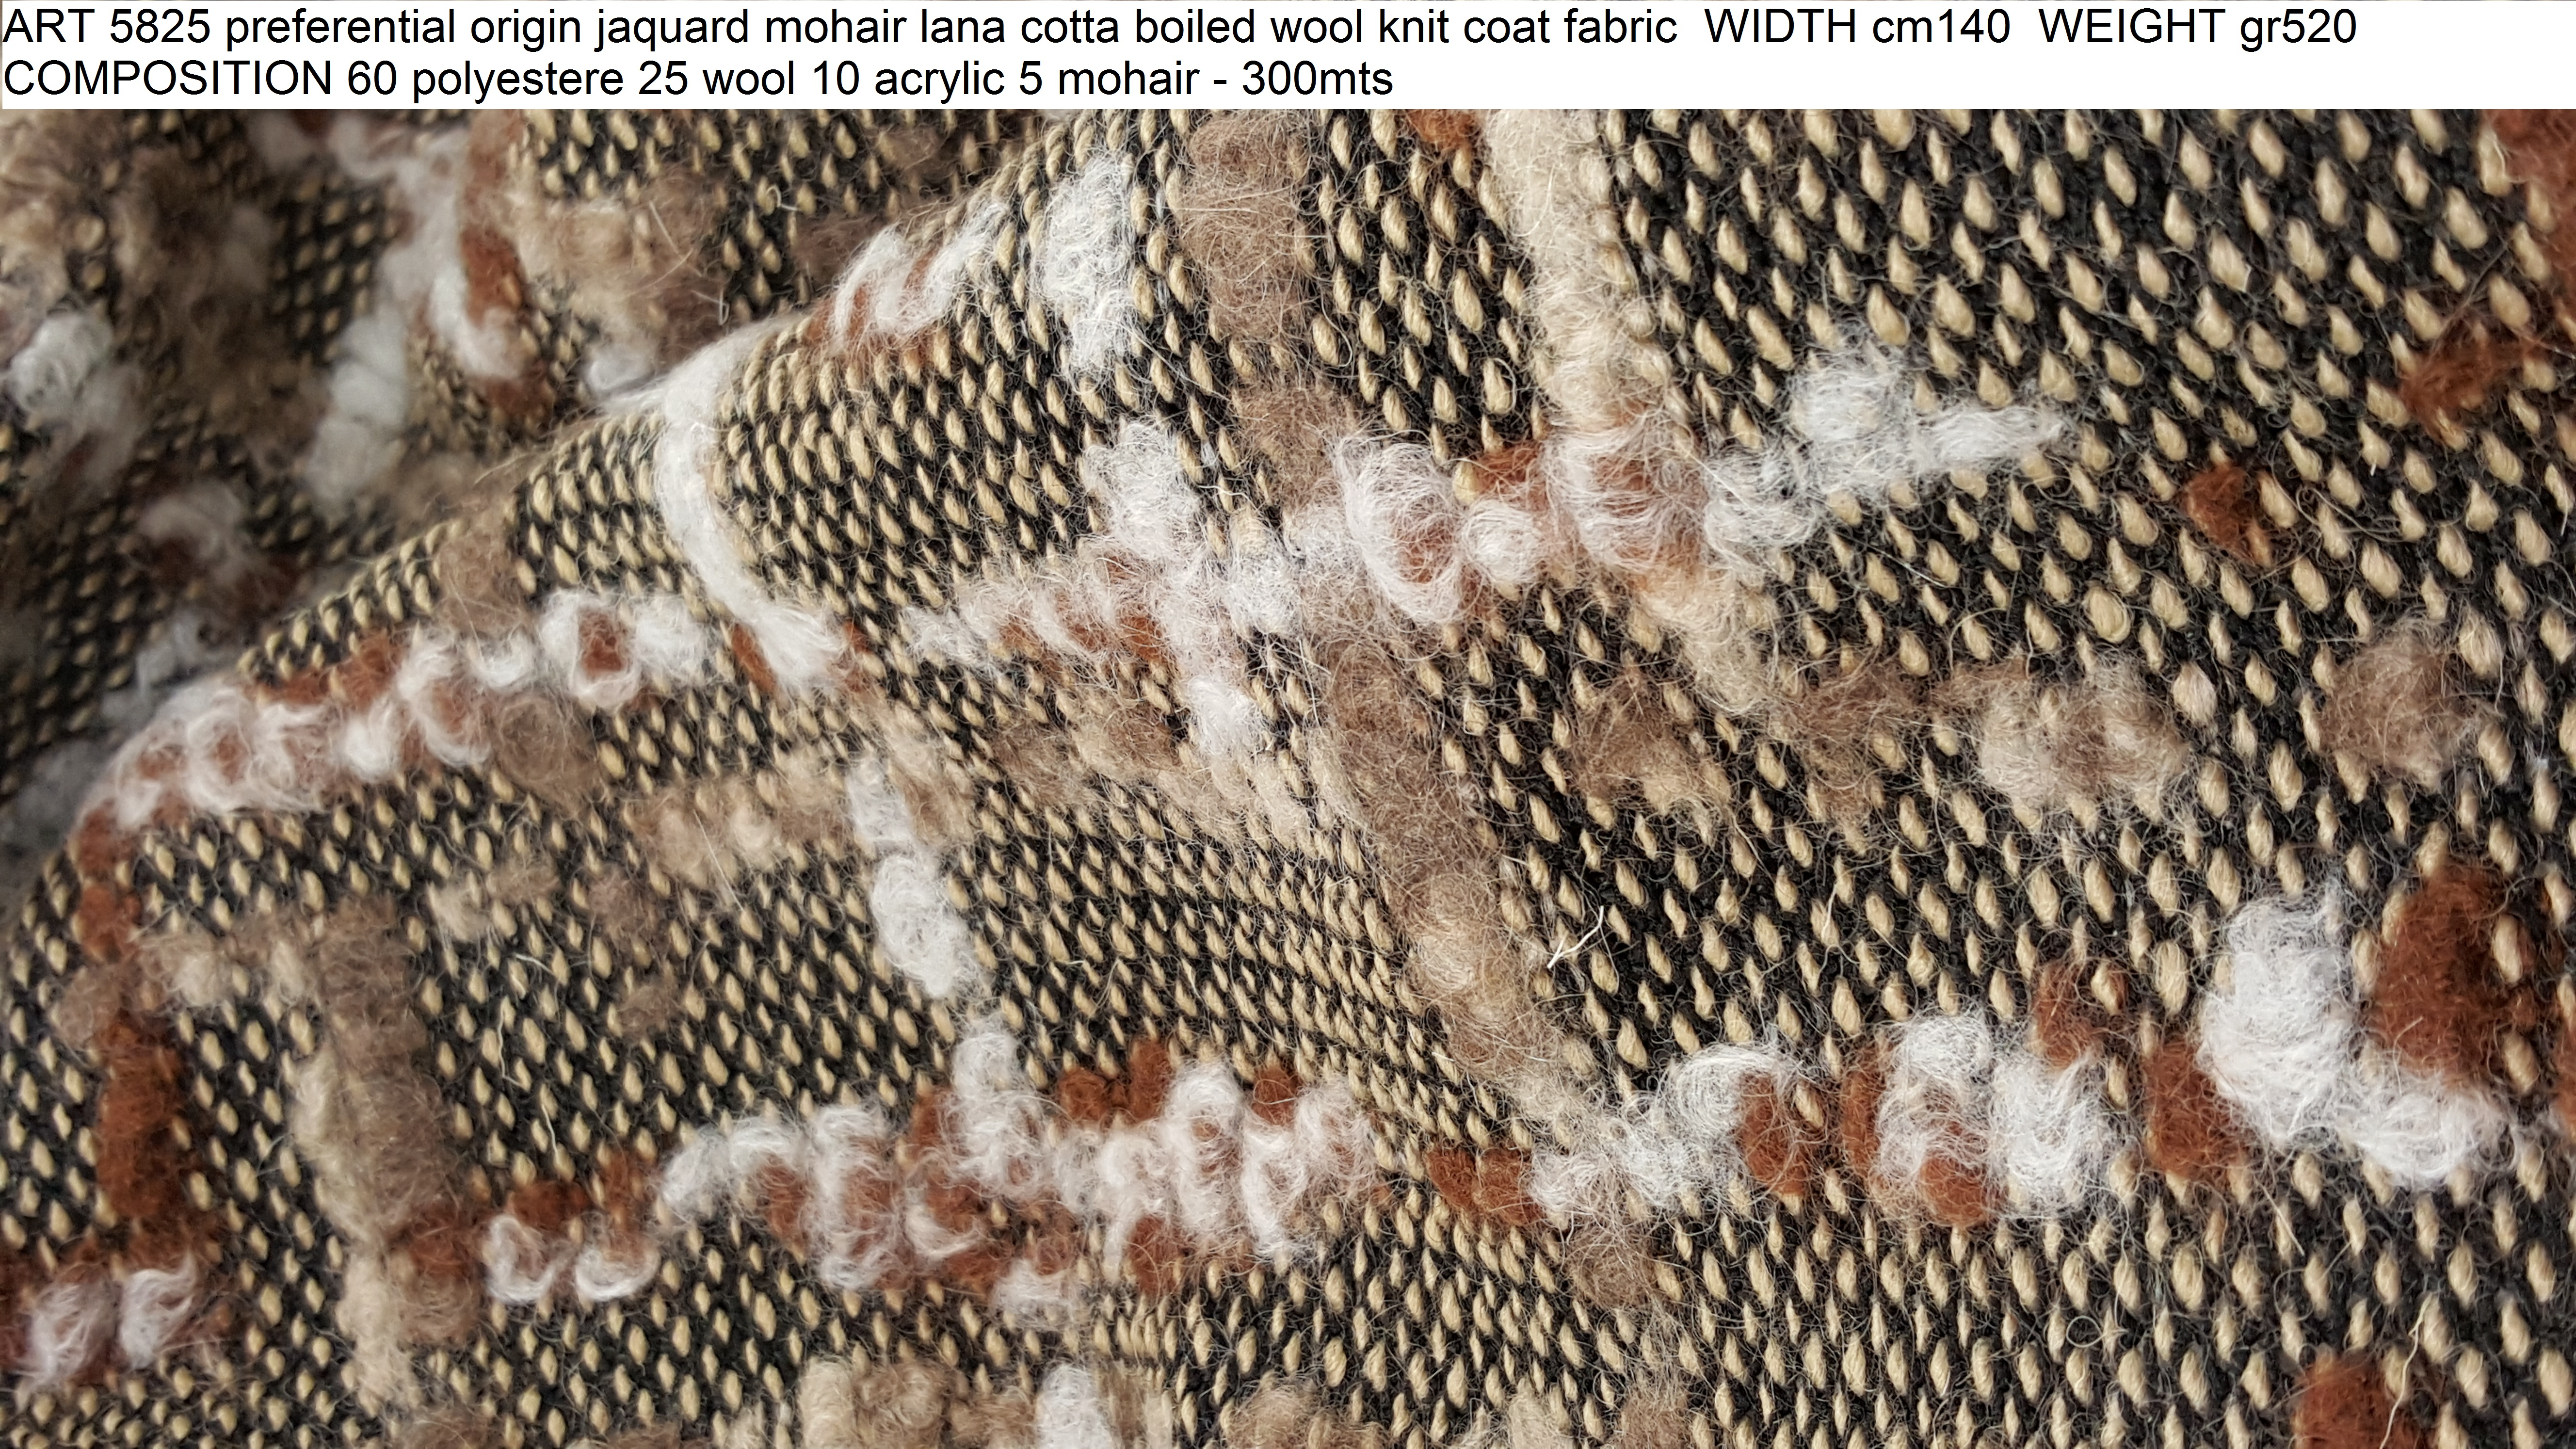 ART 5825 preferential origin jaquard mohair lana cotta boiled wool knit coat fabric WIDTH cm140 WEIGHT gr520 COMPOSITION 60 polyestere 25 wool 10 acrylic 5 mohair - 300mts